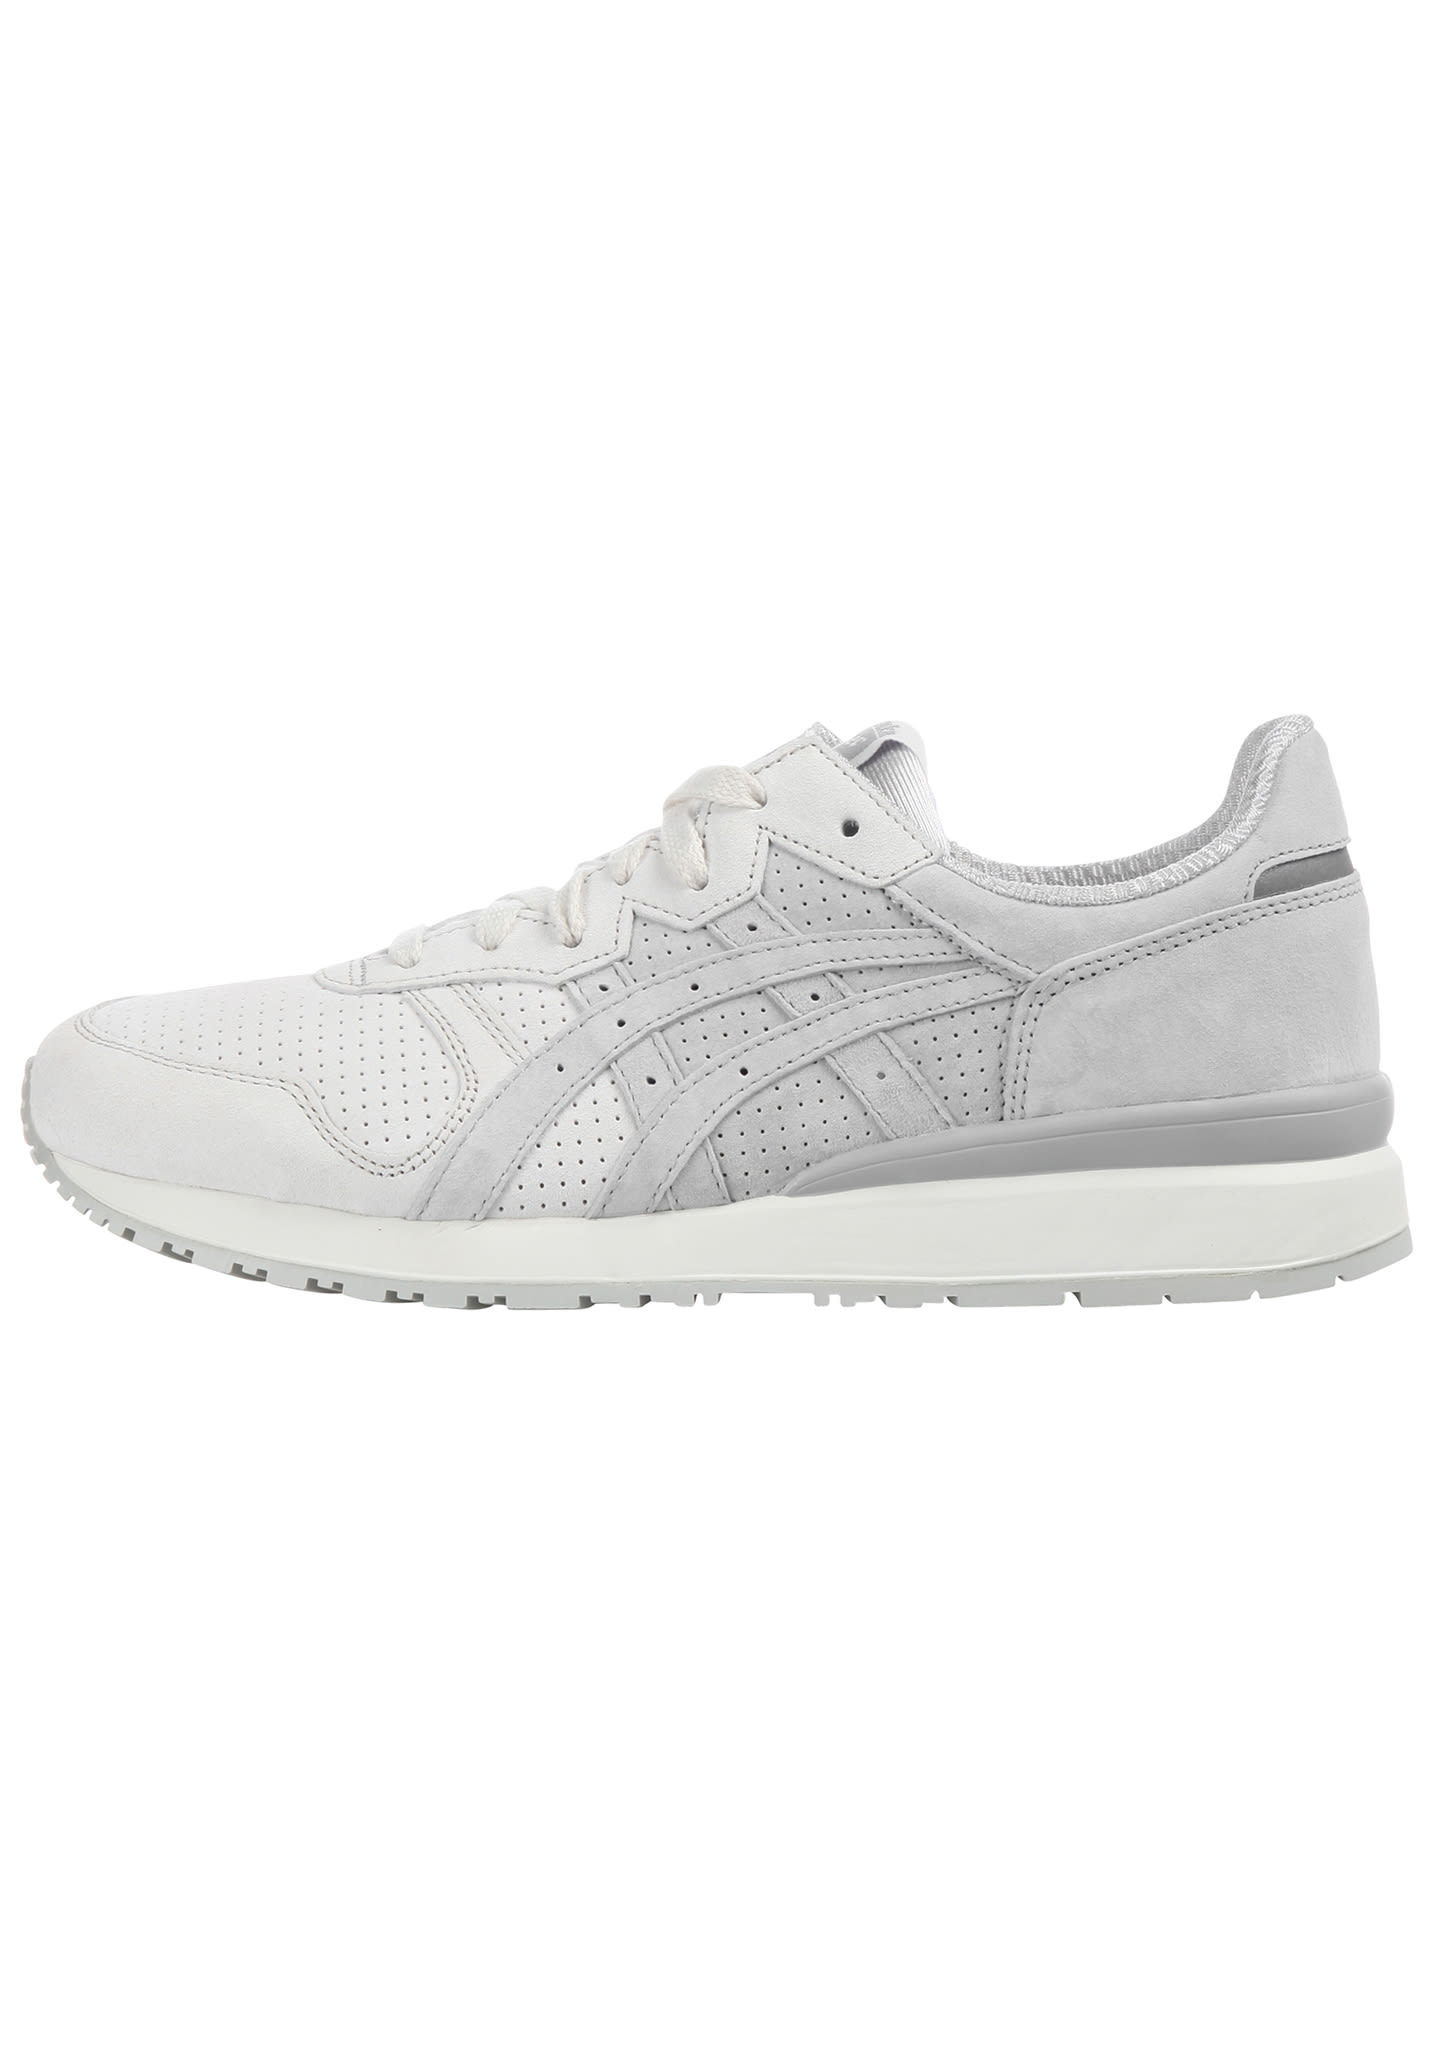 detailed look 797dd 94704 Onitsuka Tiger Tiger Ally - Sneakers - Grey